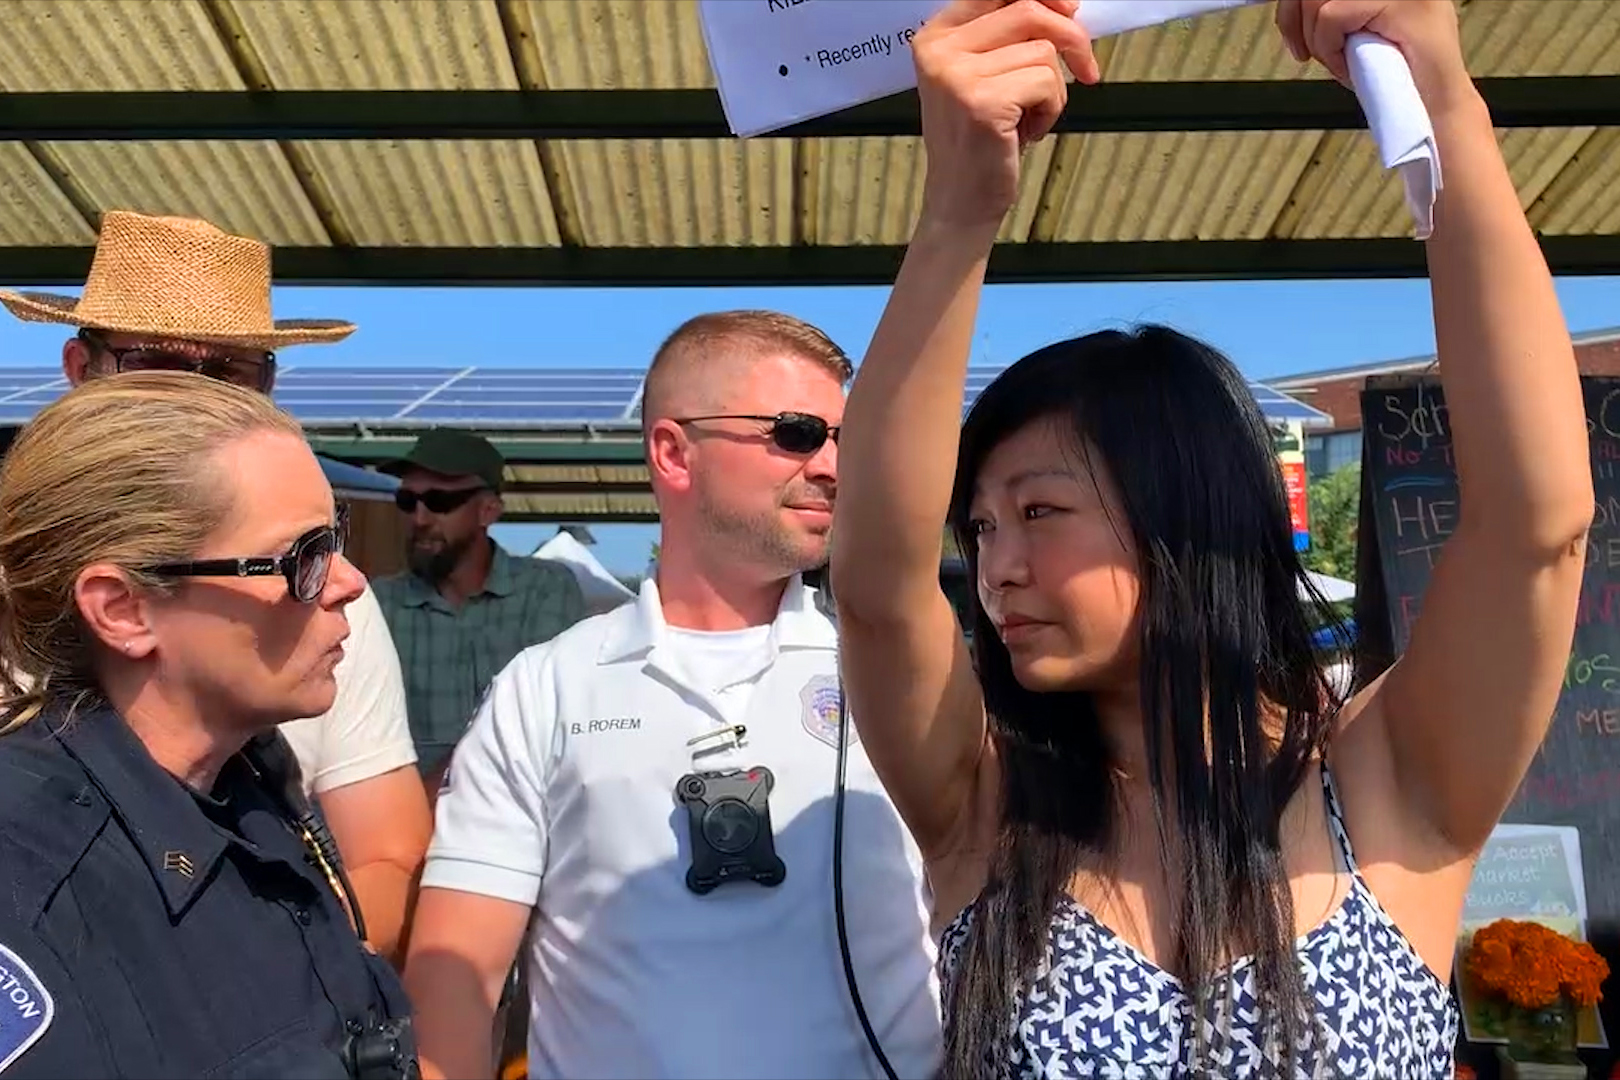 A woman in a sundress, arms holding up a sign, speaking to a female police  officer, with a male cop and a male market vendor visible behind her.